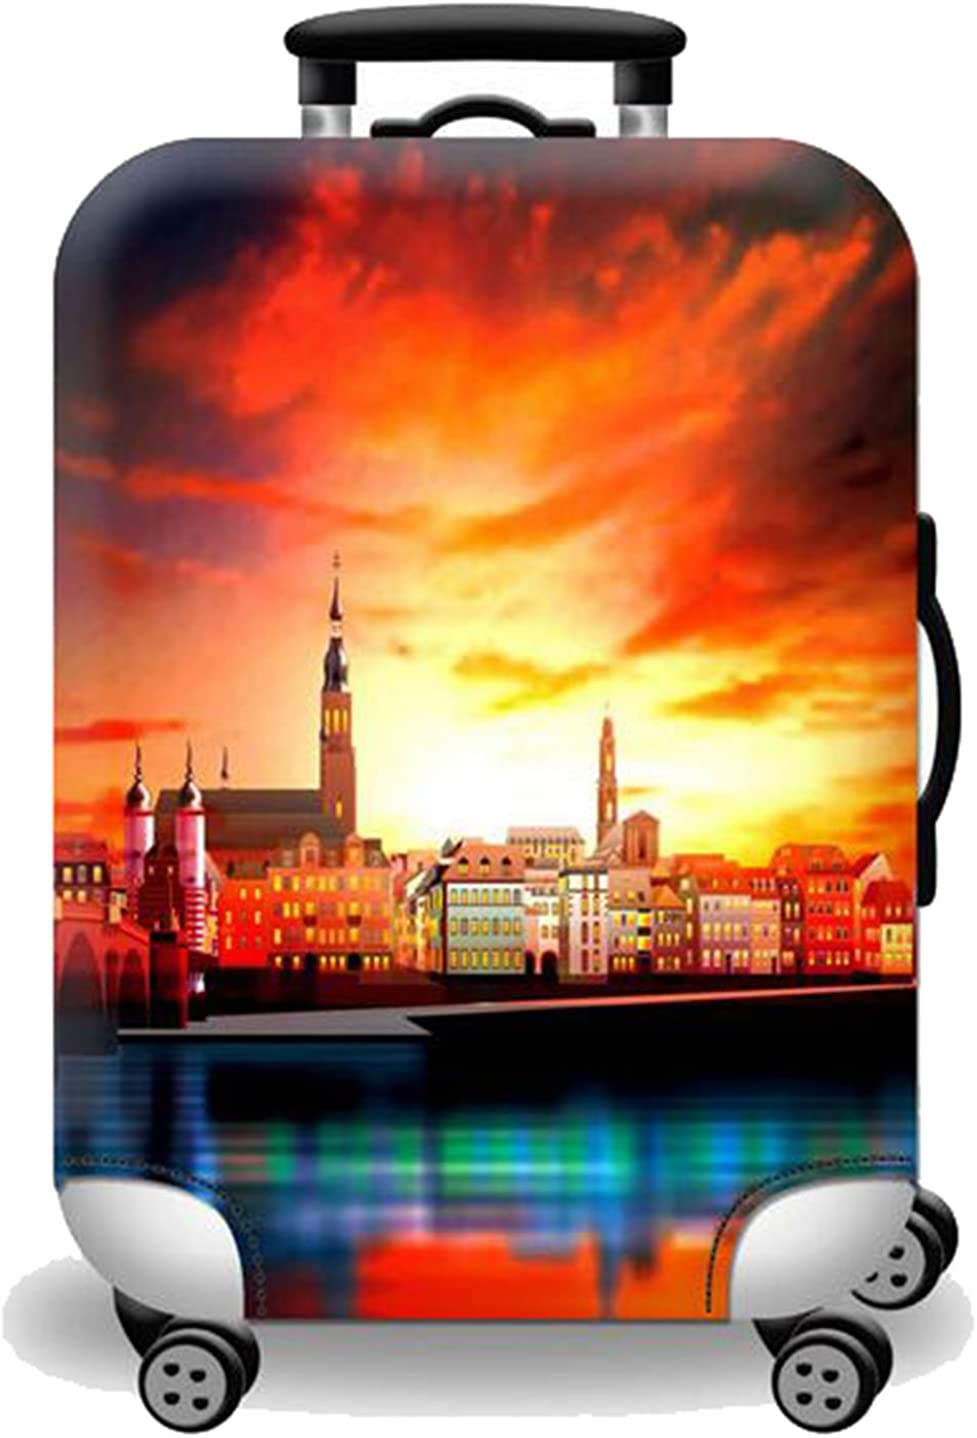 Joyloading Cartoon The World Trip Picture Travel Luggage Cover Fits 27-30 Inch Luggage Protector